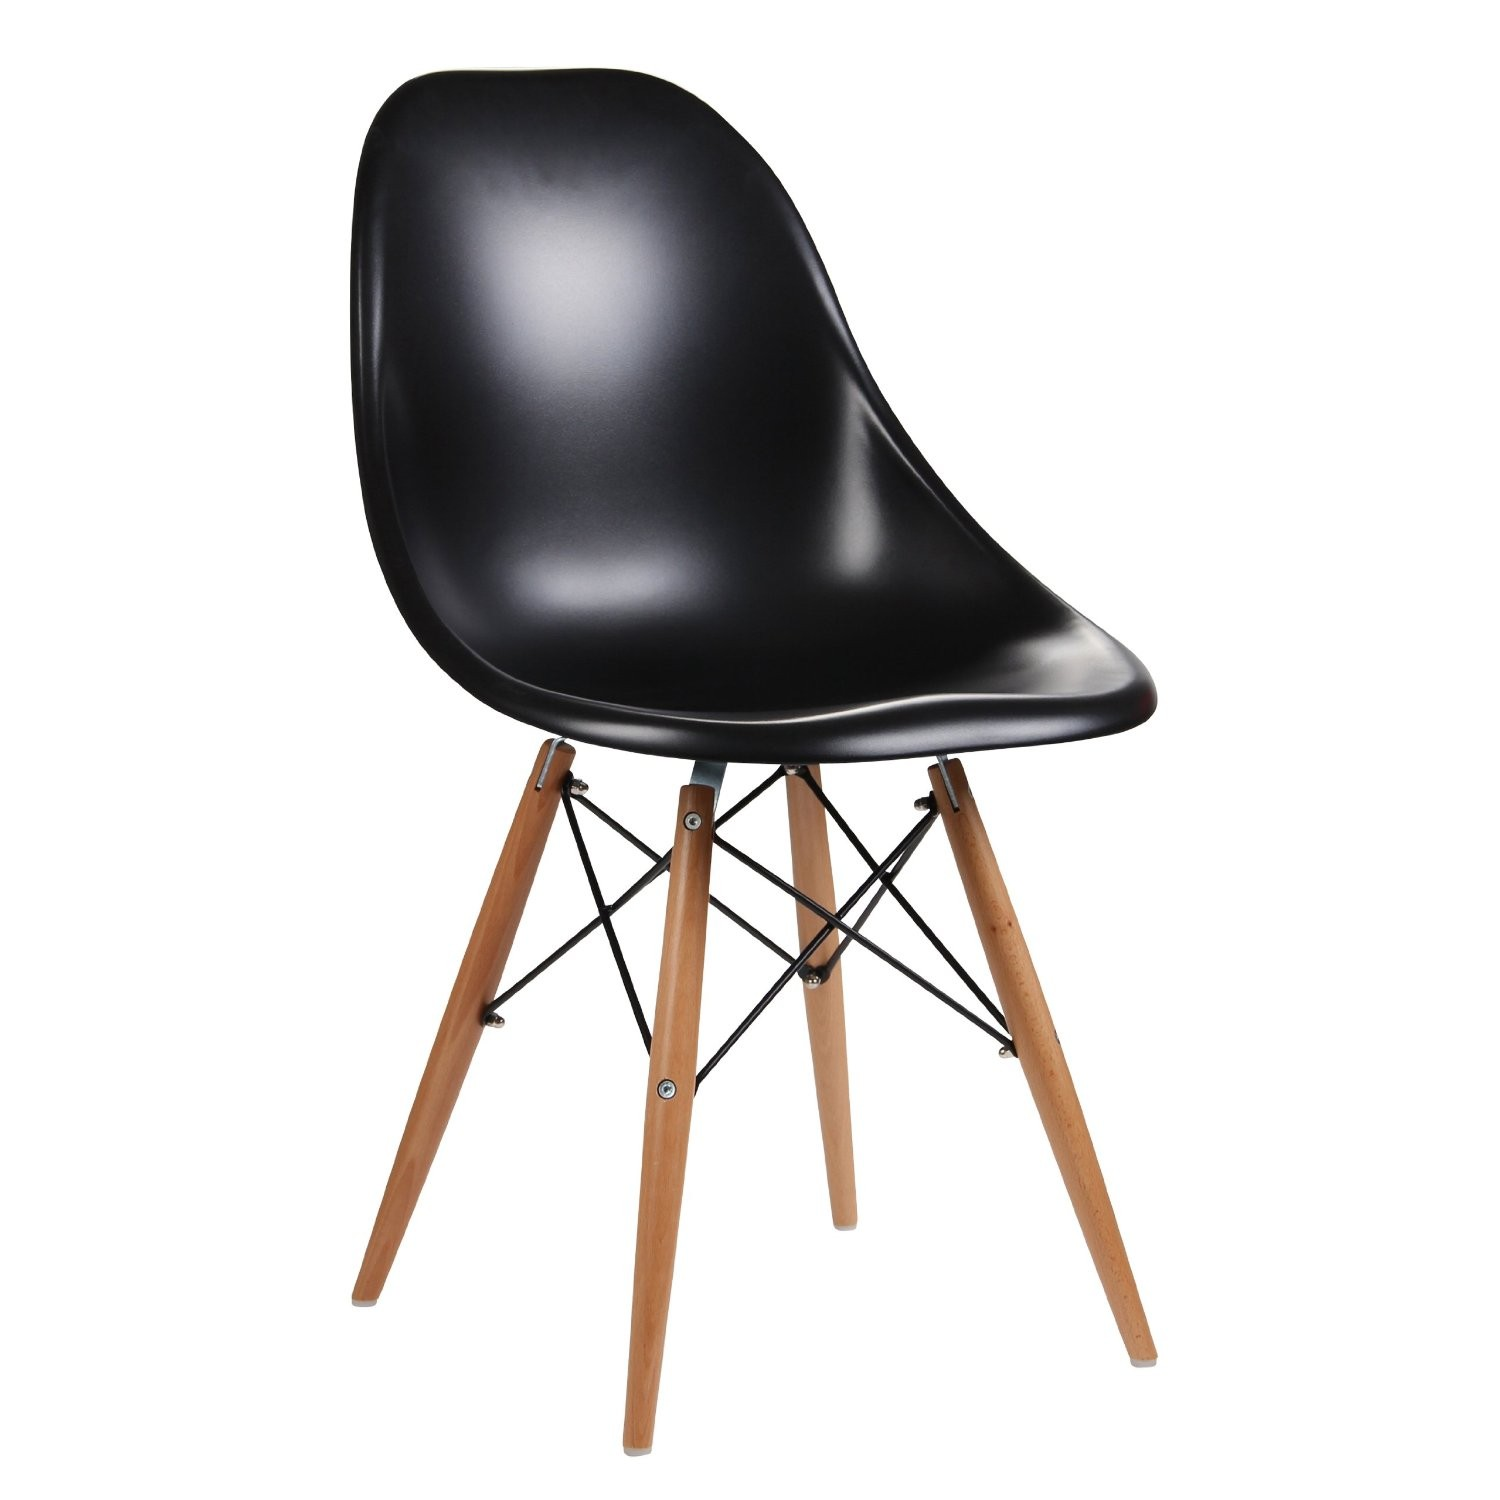 Eames Inspired Moulded Black Dining Chair